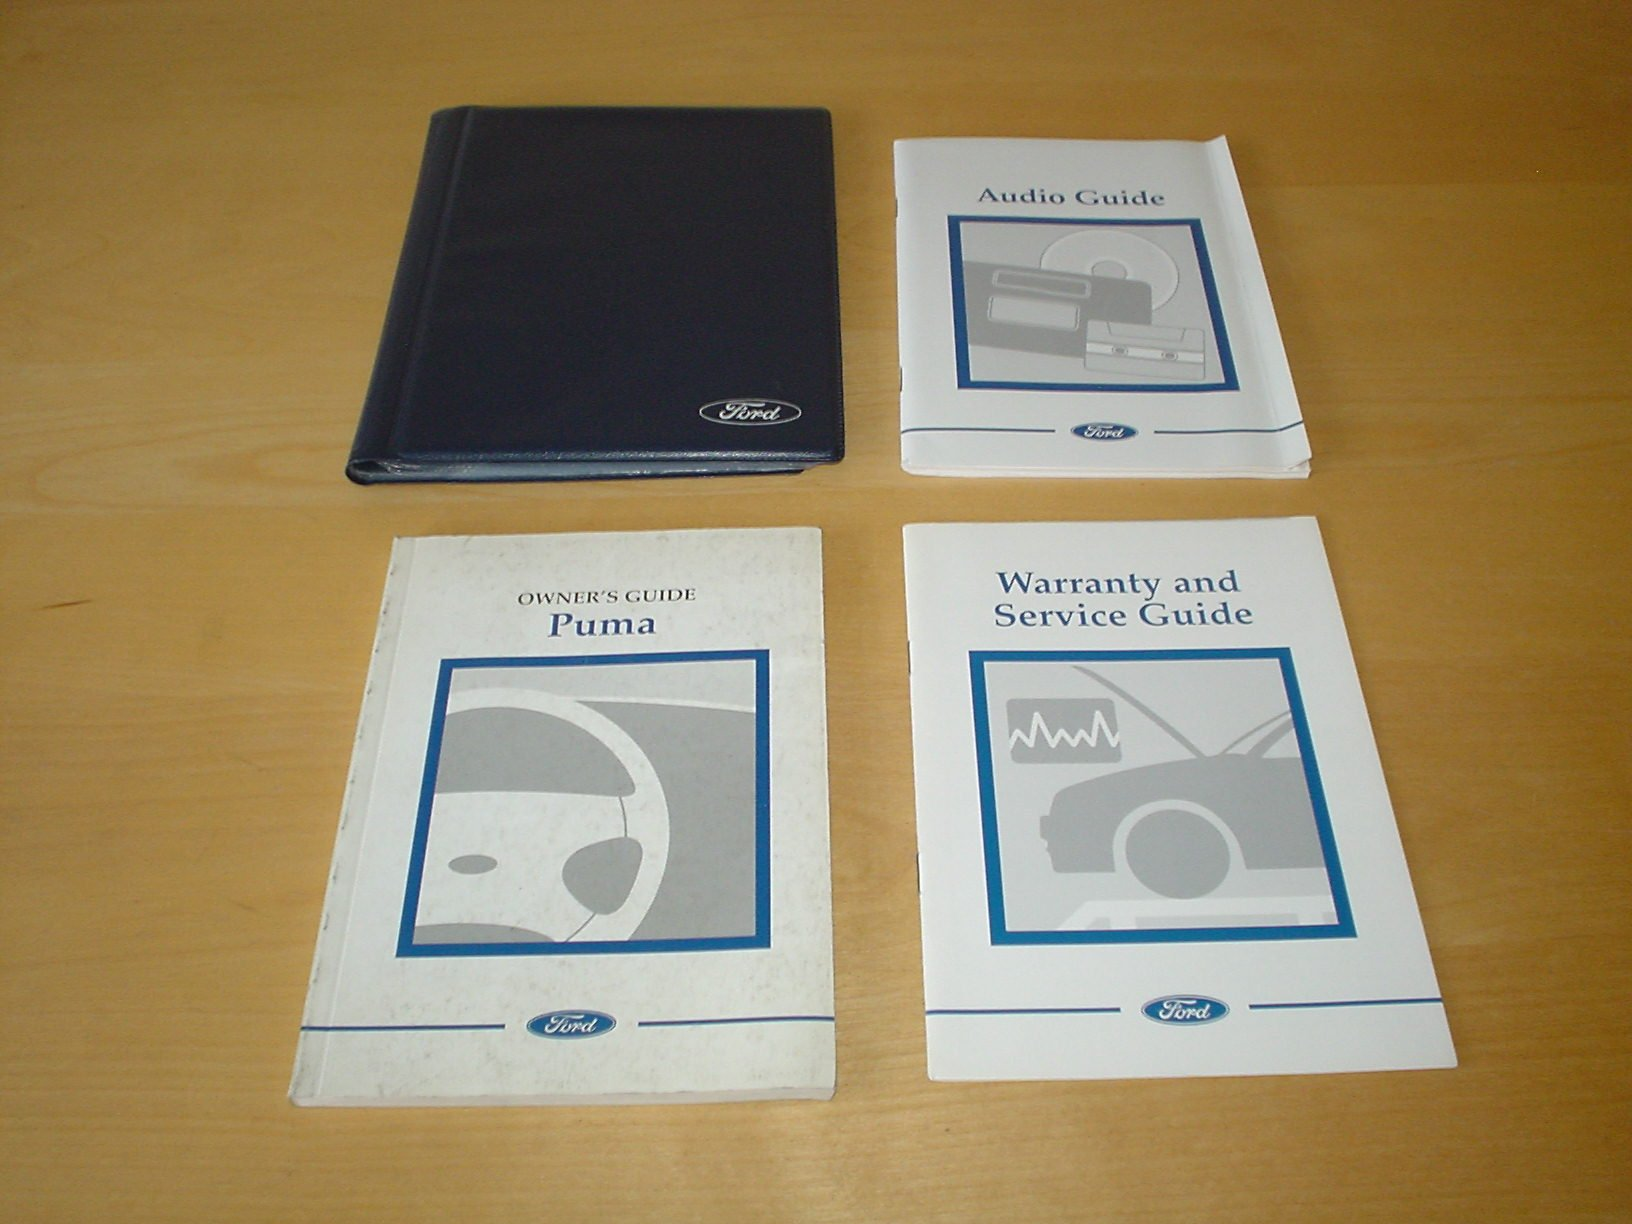 FORD PUMA OWNERS MANUAL HANDBOOK c w WALLET (1997 - 2002) - 1.4   1.7 LITRE  ZETEC ENGINES - OWNER S HAND BOOK MANUAL Paperback – 1999 34410e57e862